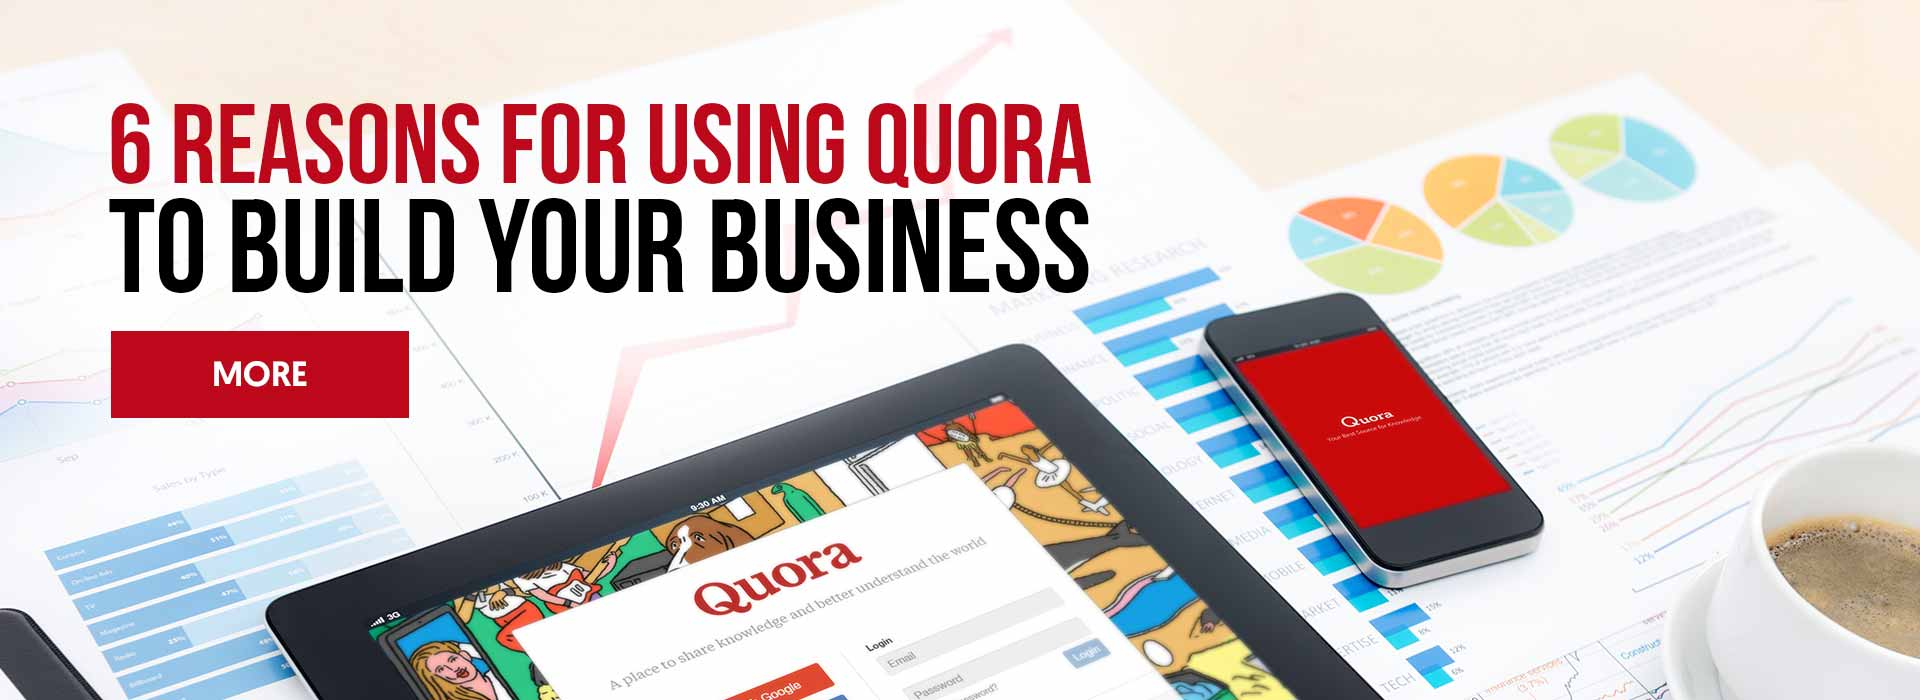 Reasons to Use Quora